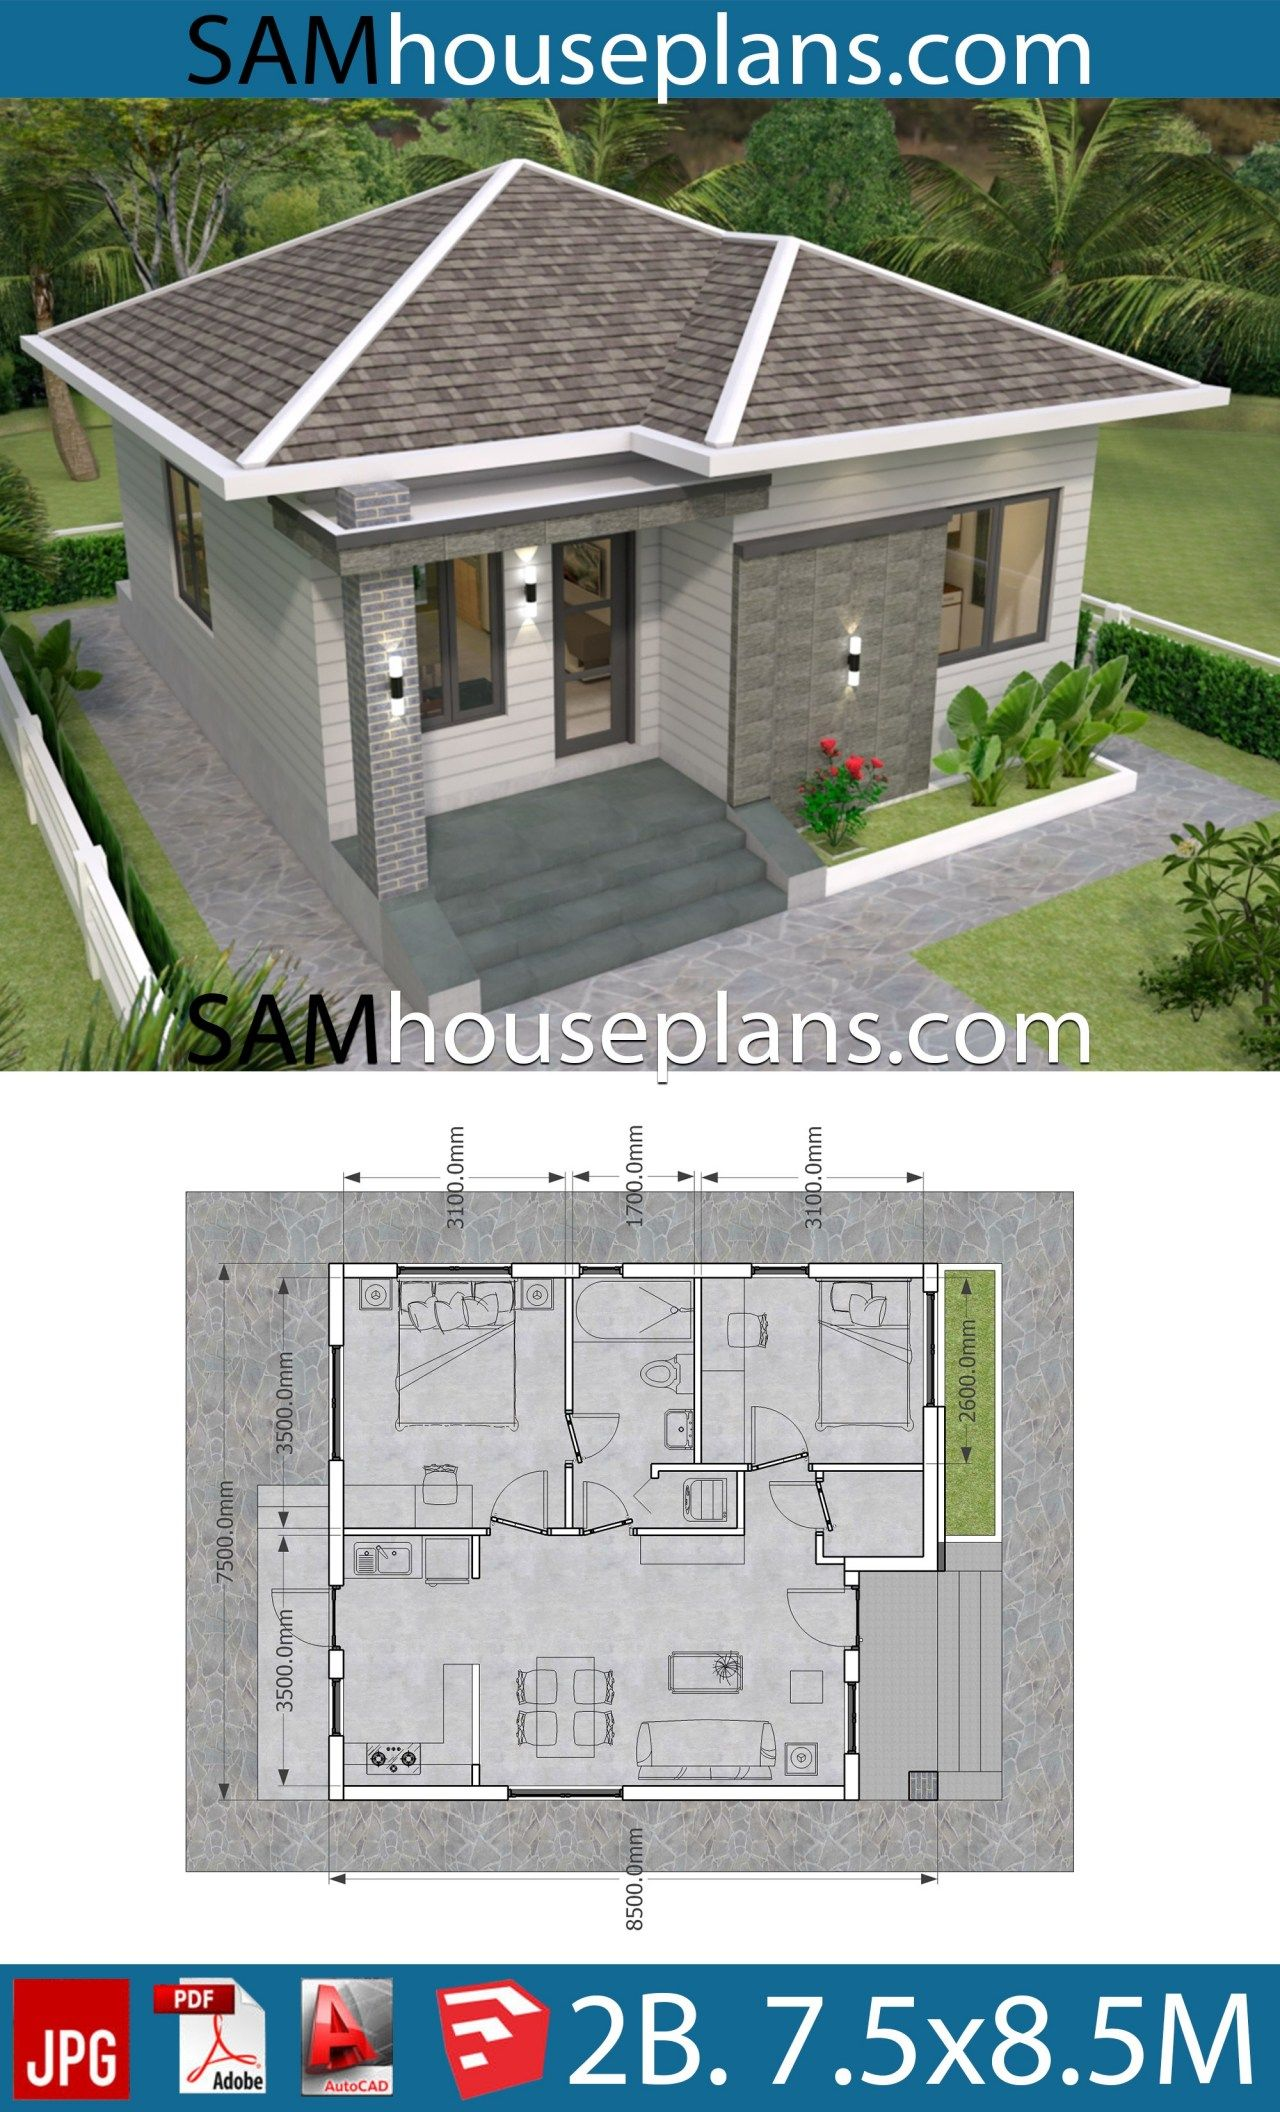 House Plans 7 5x8 5m With 2 Bedrooms Sam House Plans Bungalow House Plans Simple House Plans Small House Design Plans